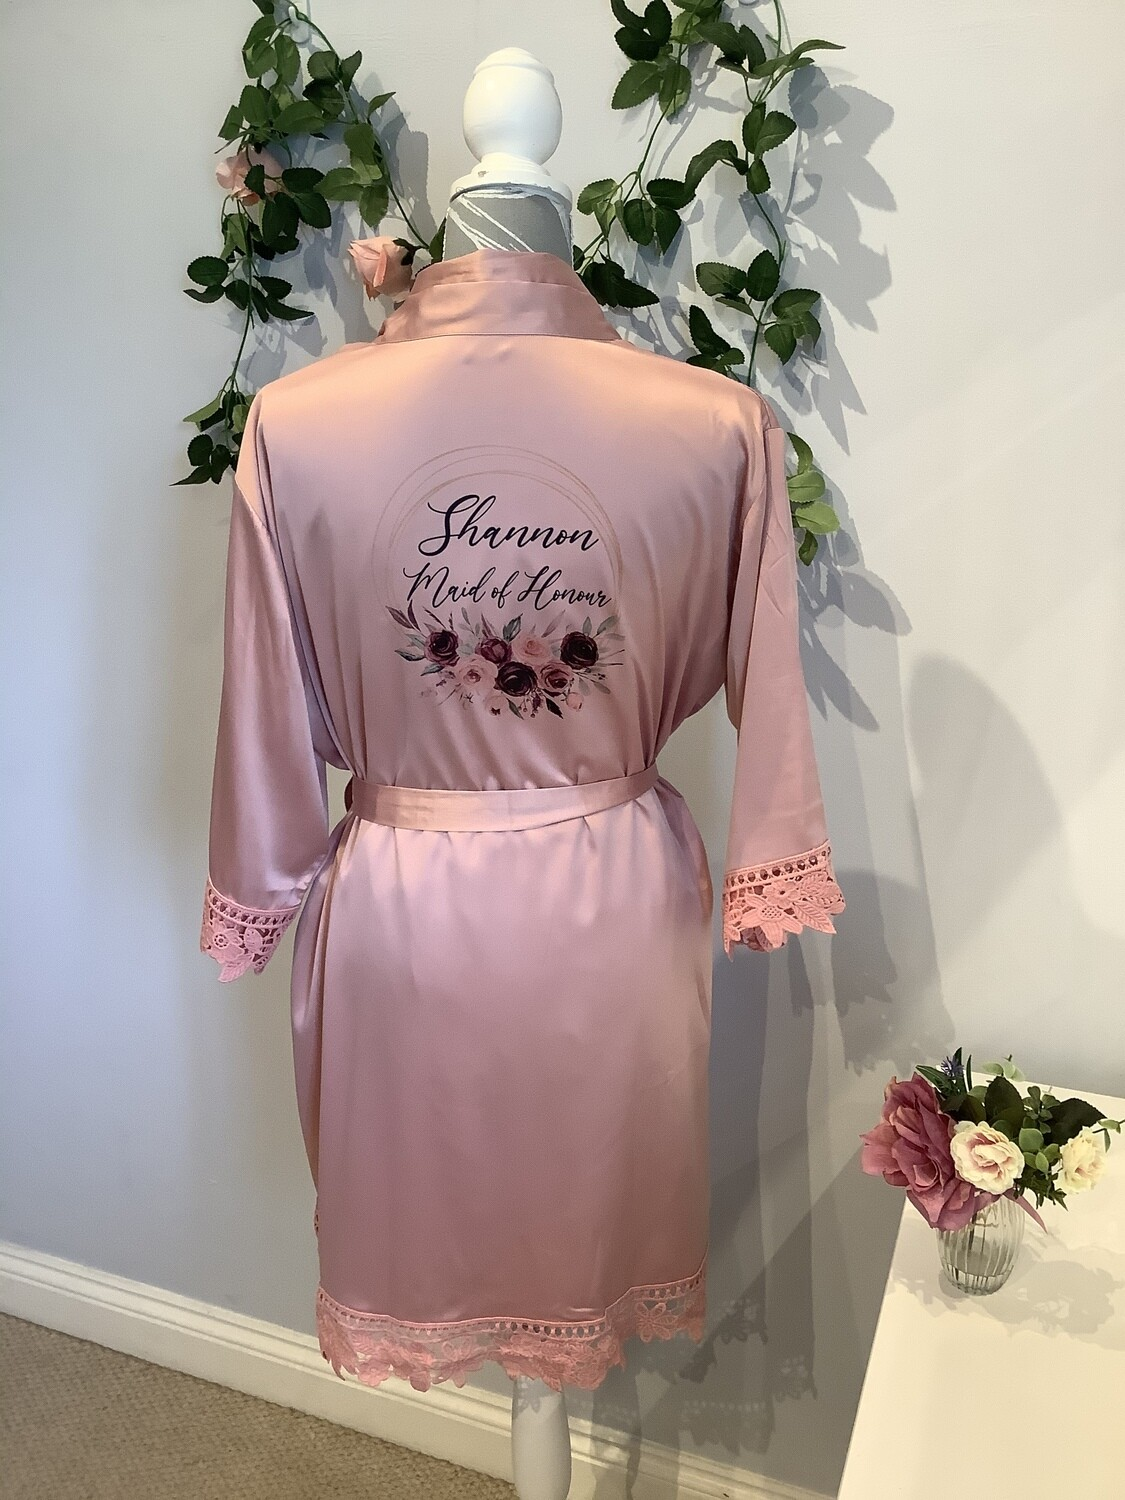 CHRISTINA Dusty pink robes with floral design